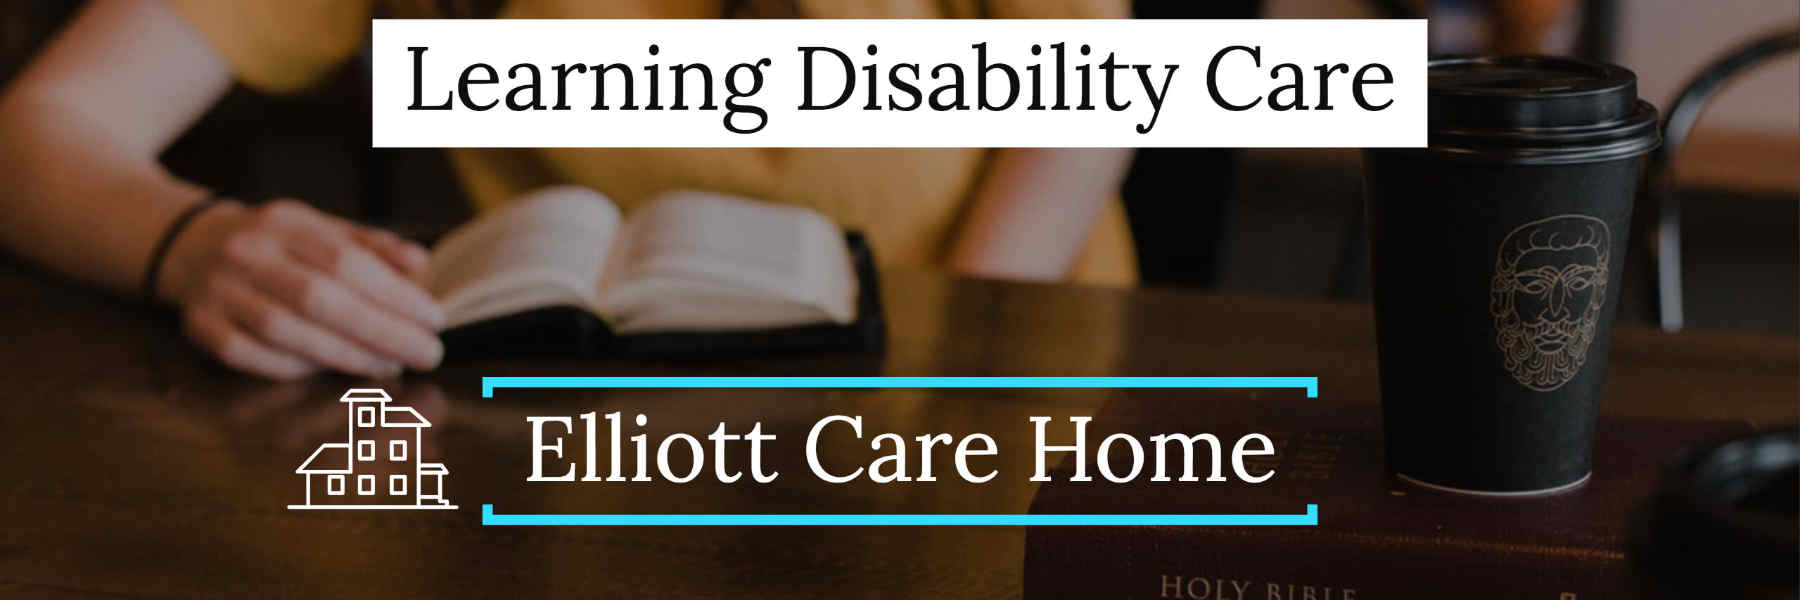 Elliott Learning Disability Residential Care Home Leicester banner